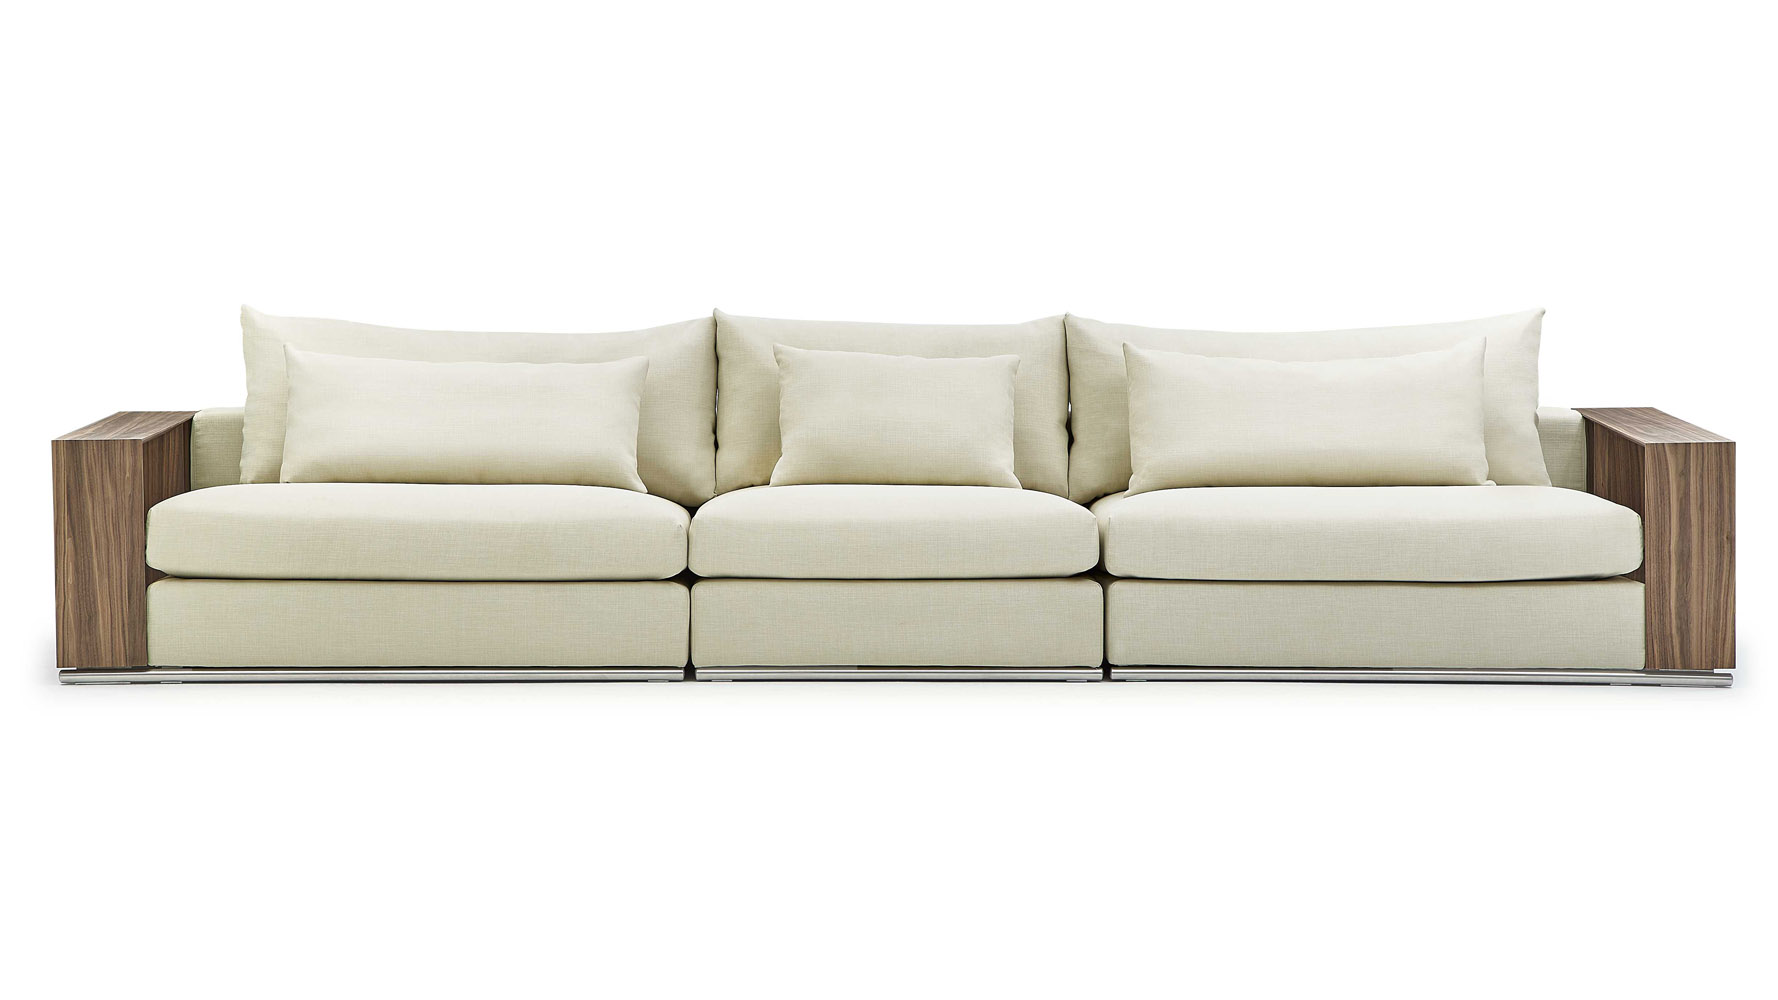 Couch Couch Soriano Wooden Arm Long Sofa Beige